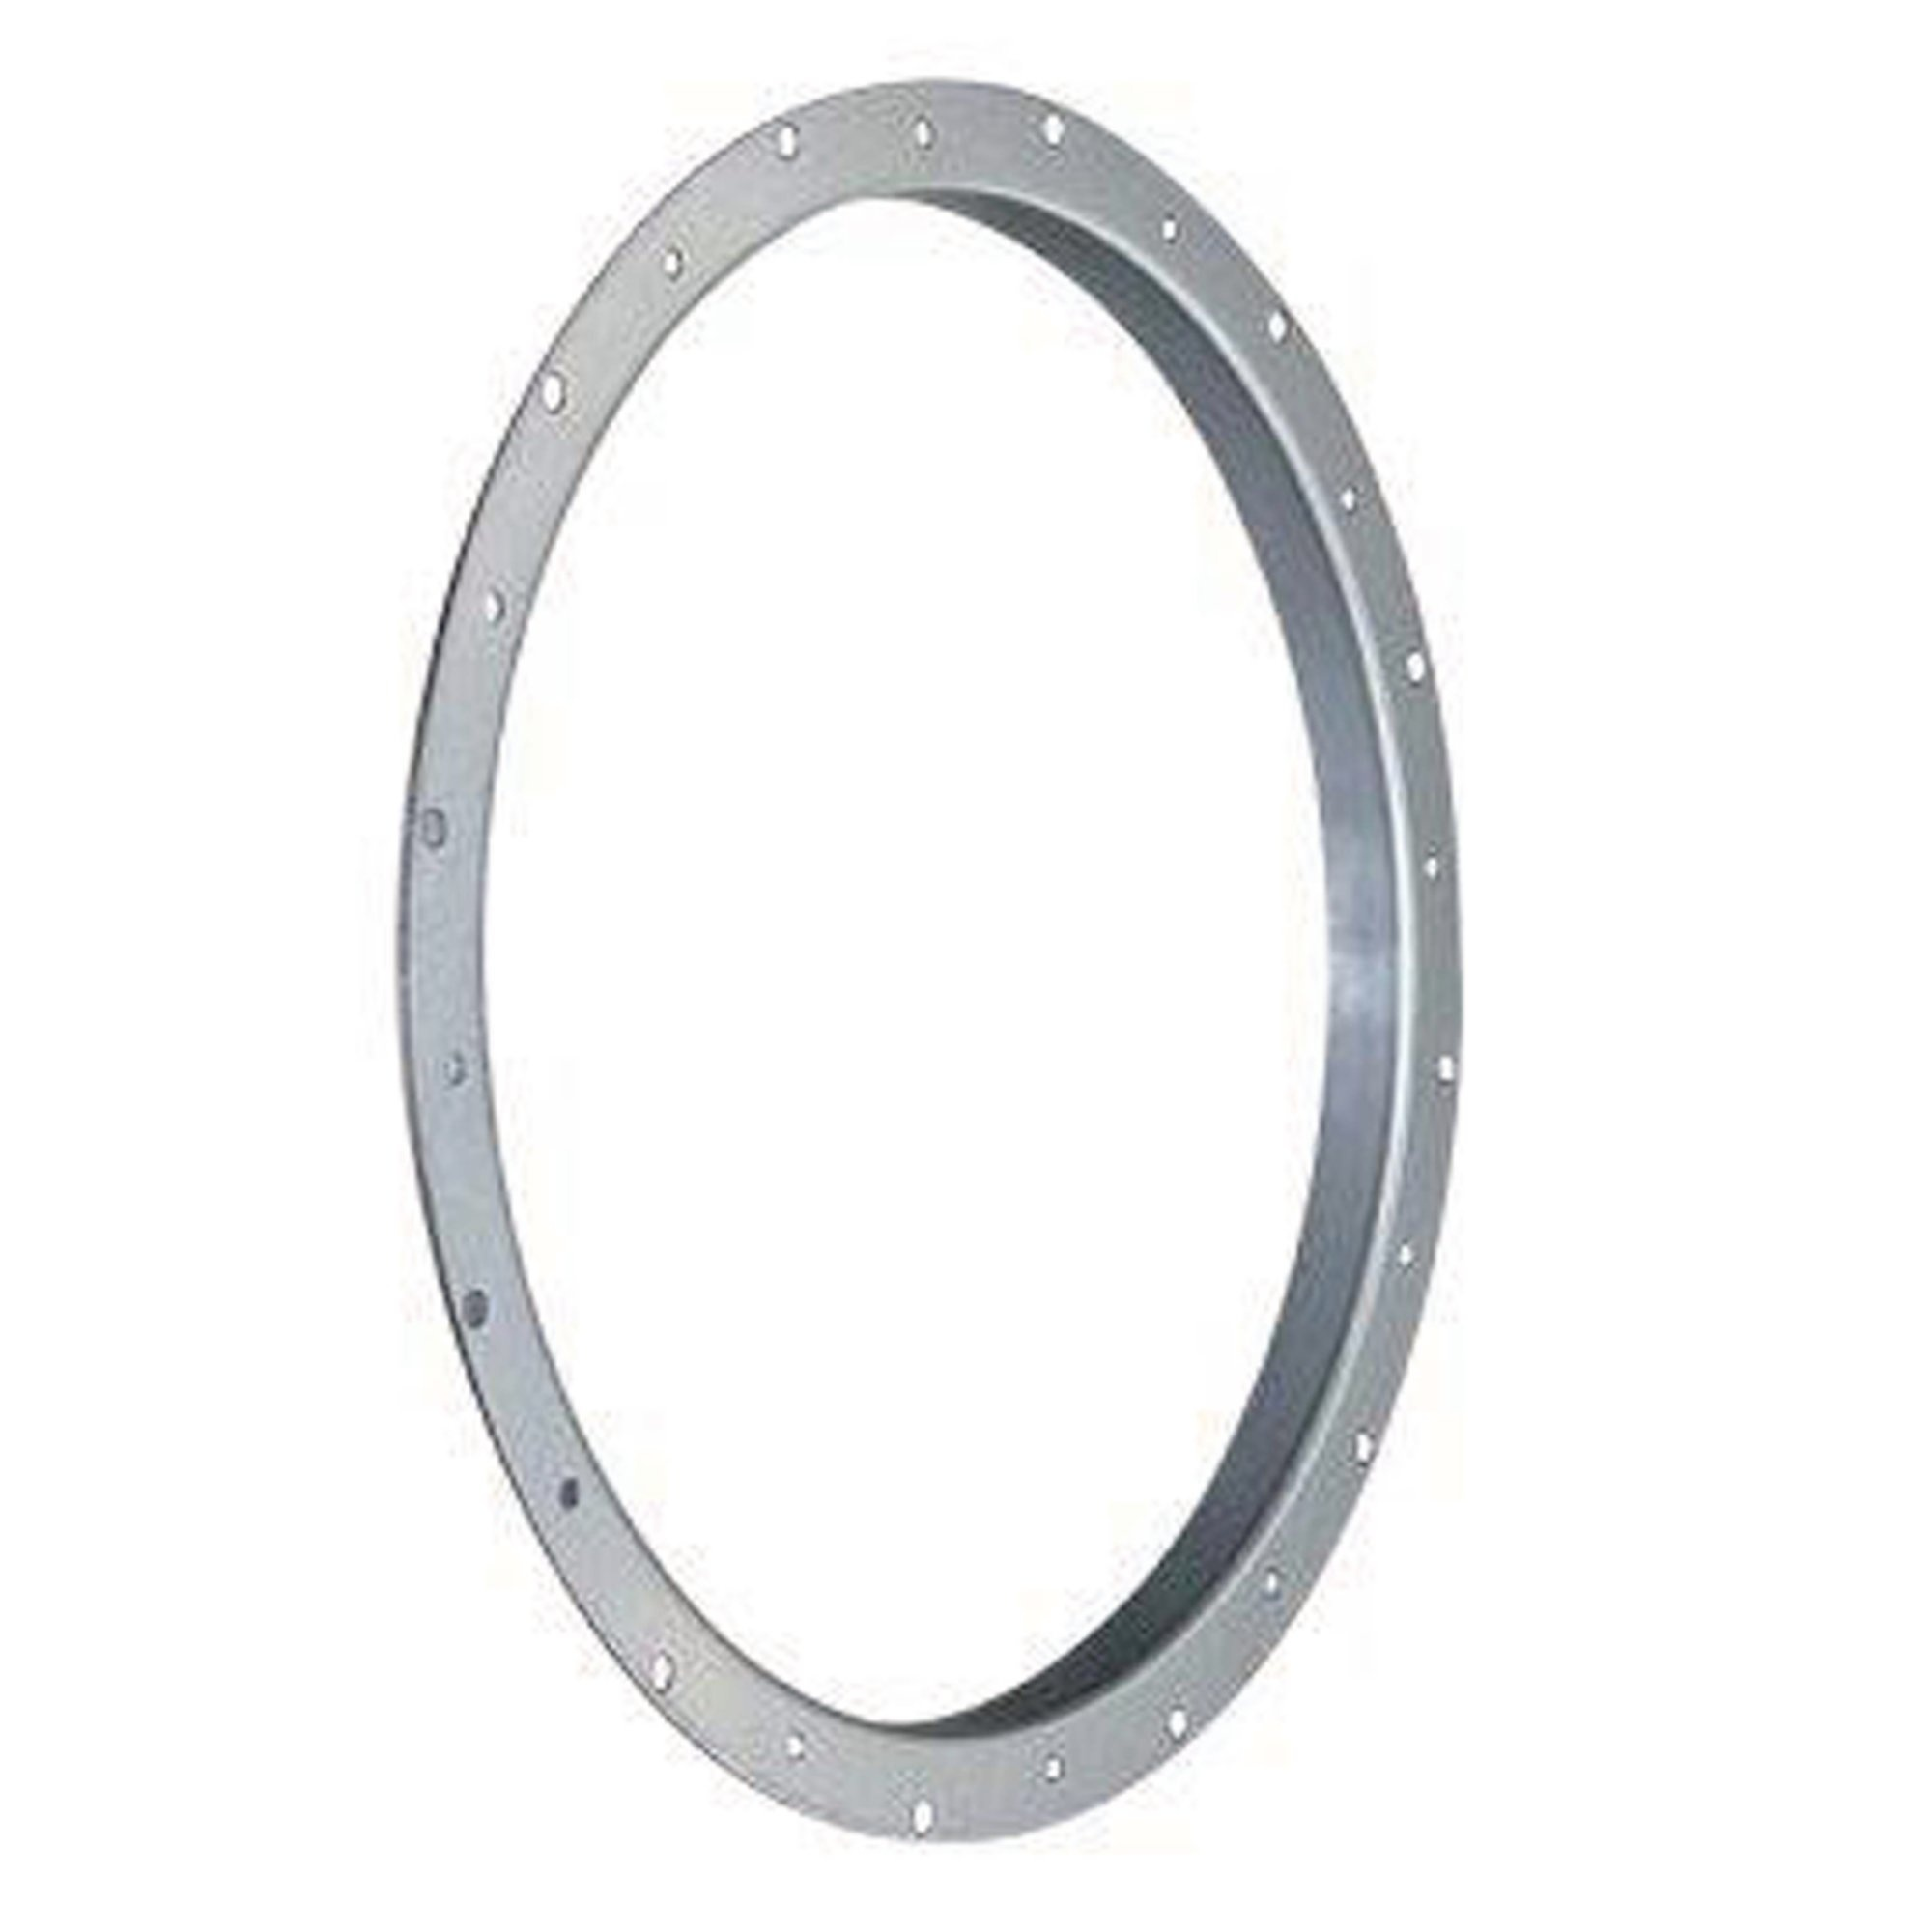 GFL-AR/AXC 900 counter flange